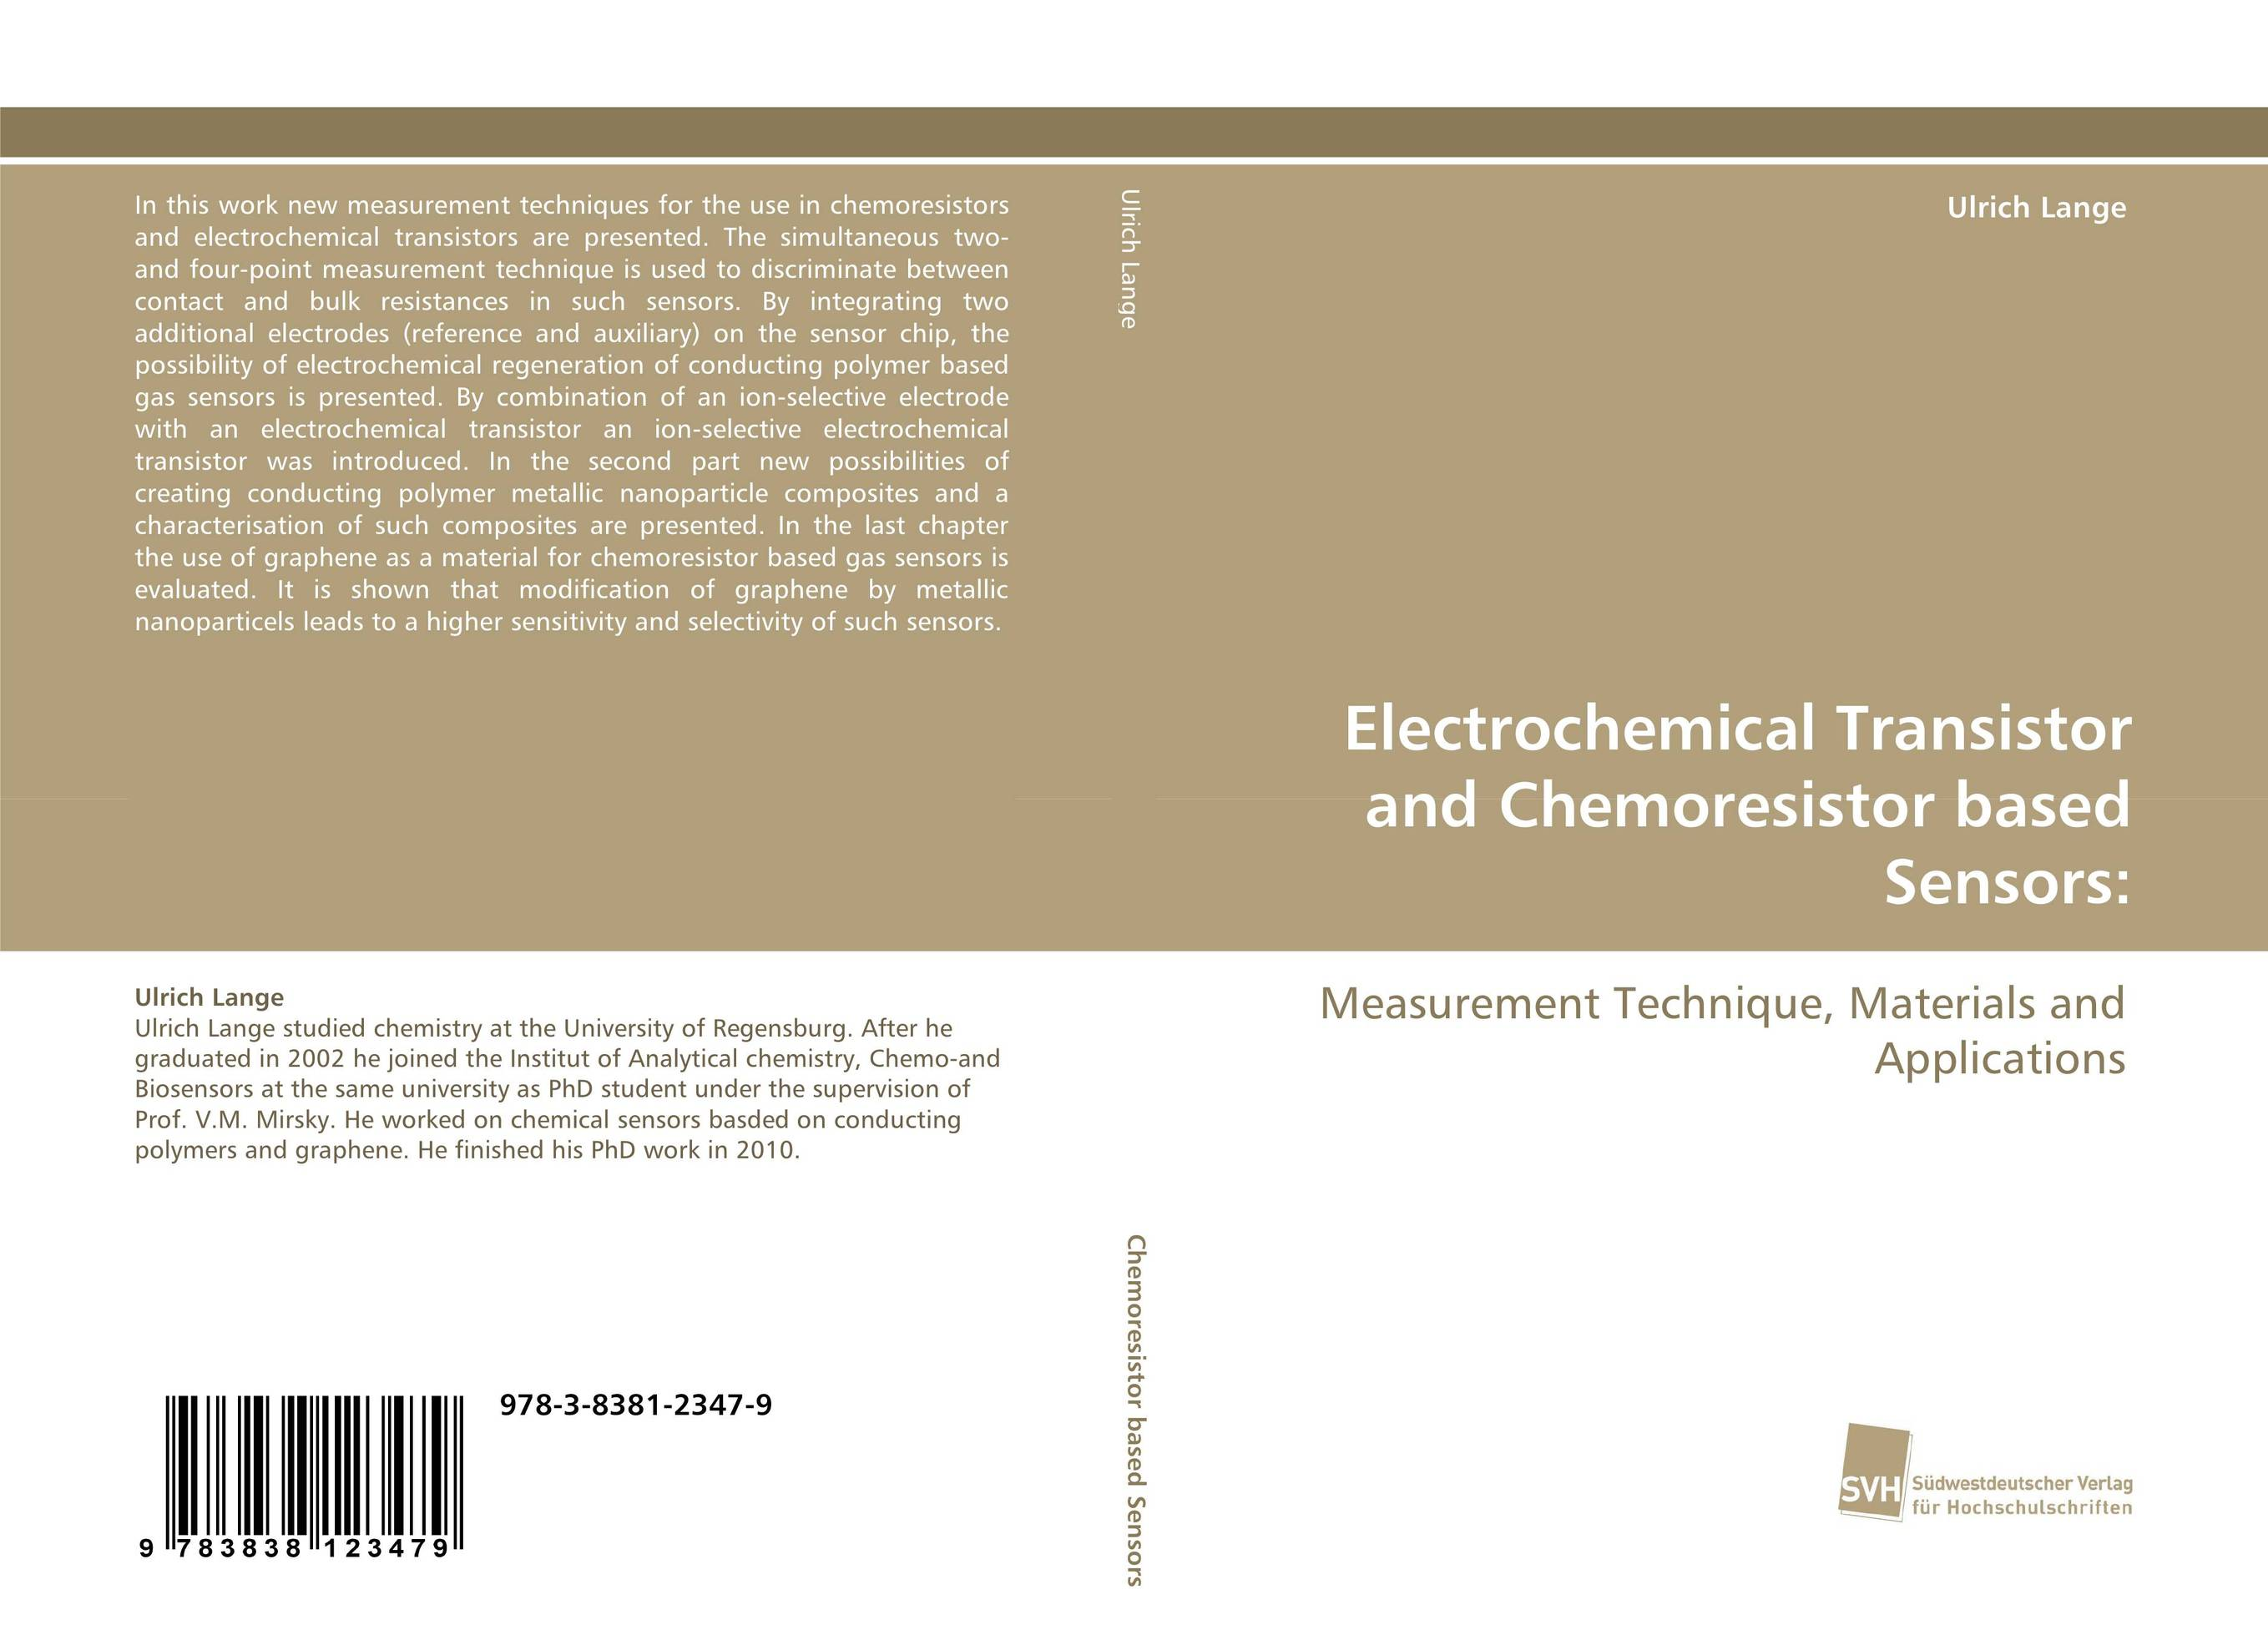 Electrochemical Transistor and Chemoresistor based Sensors: application of conducting polymer electrodes in cell impedance sensing